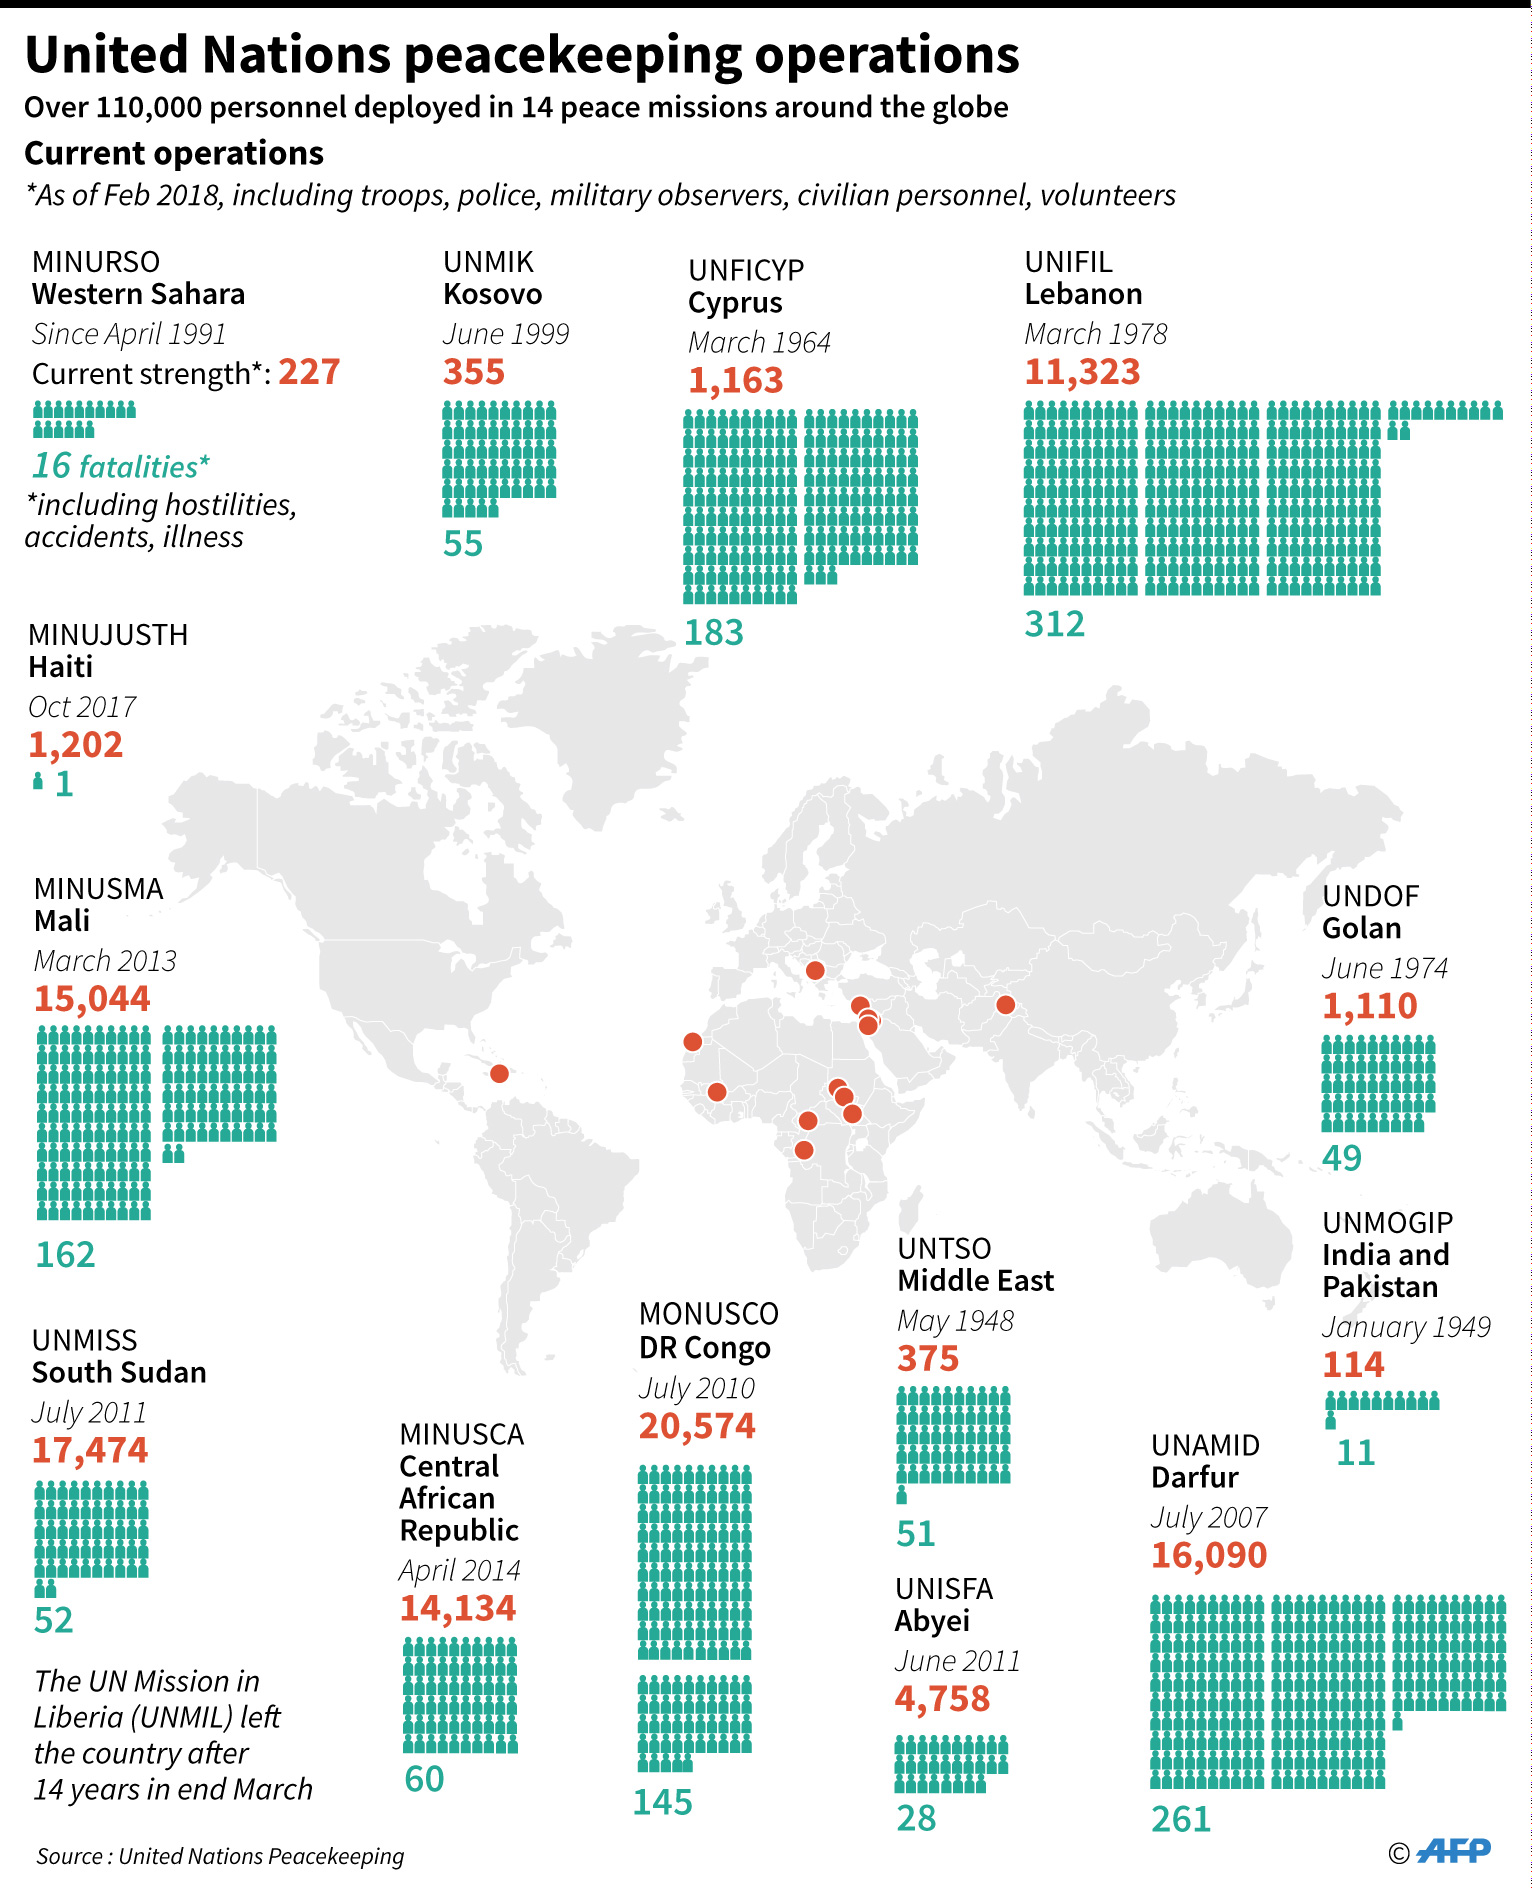 UN peacekeeping operations worldwide